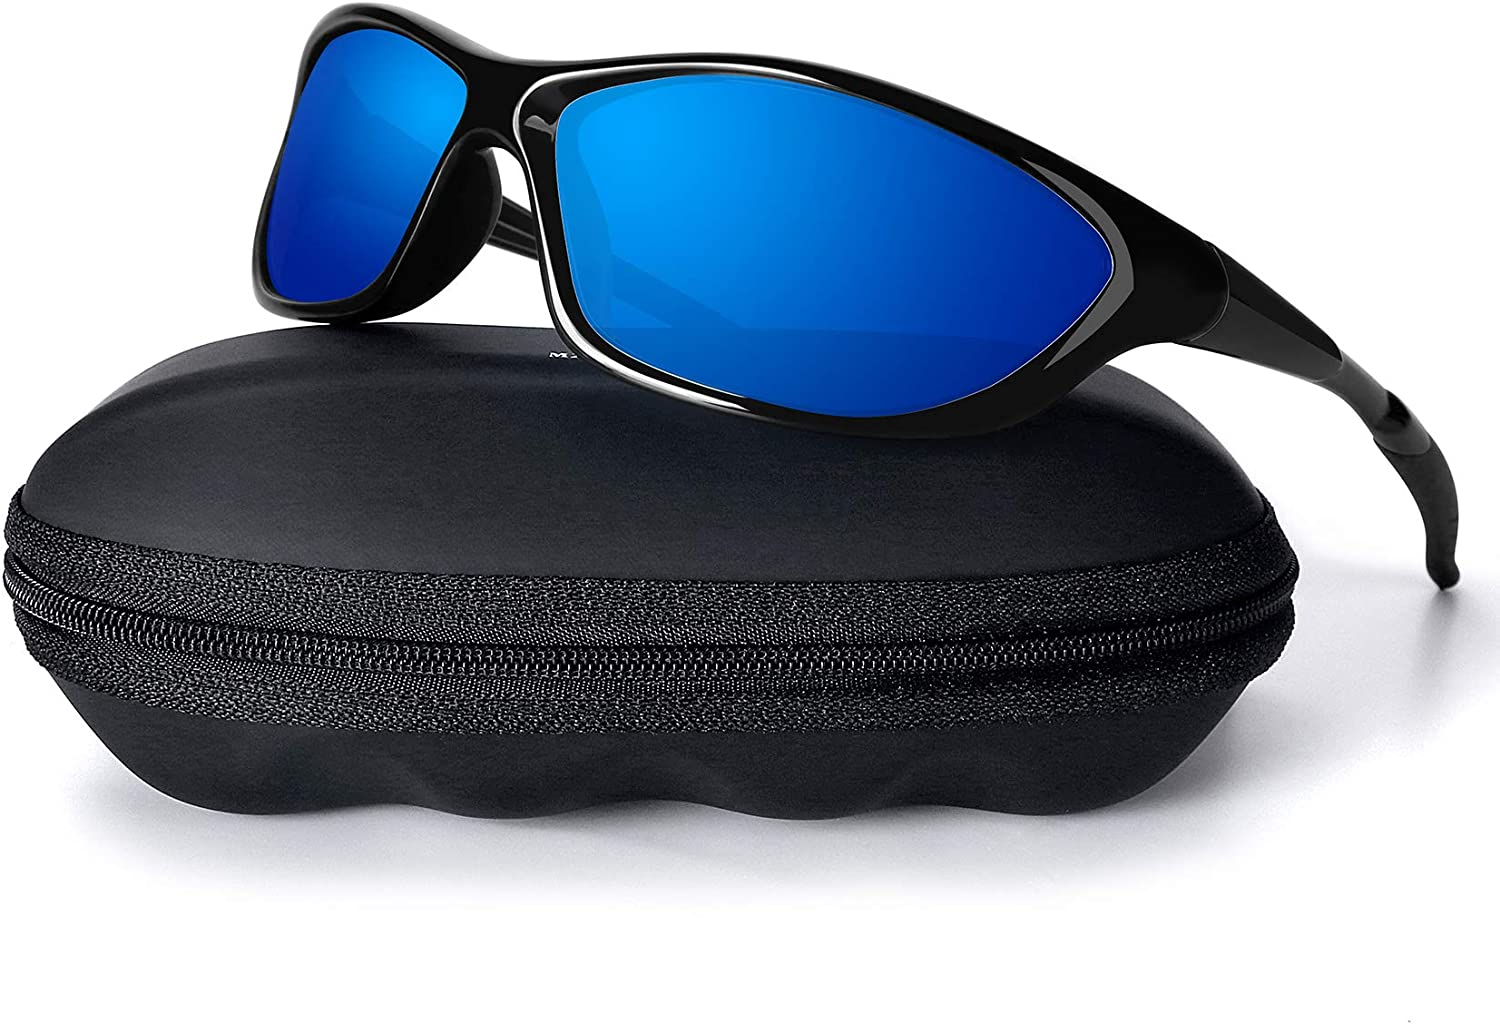 Polarized Sports Credence Sunglasses For Men MXNX Cycling Fishing Driving online shopping